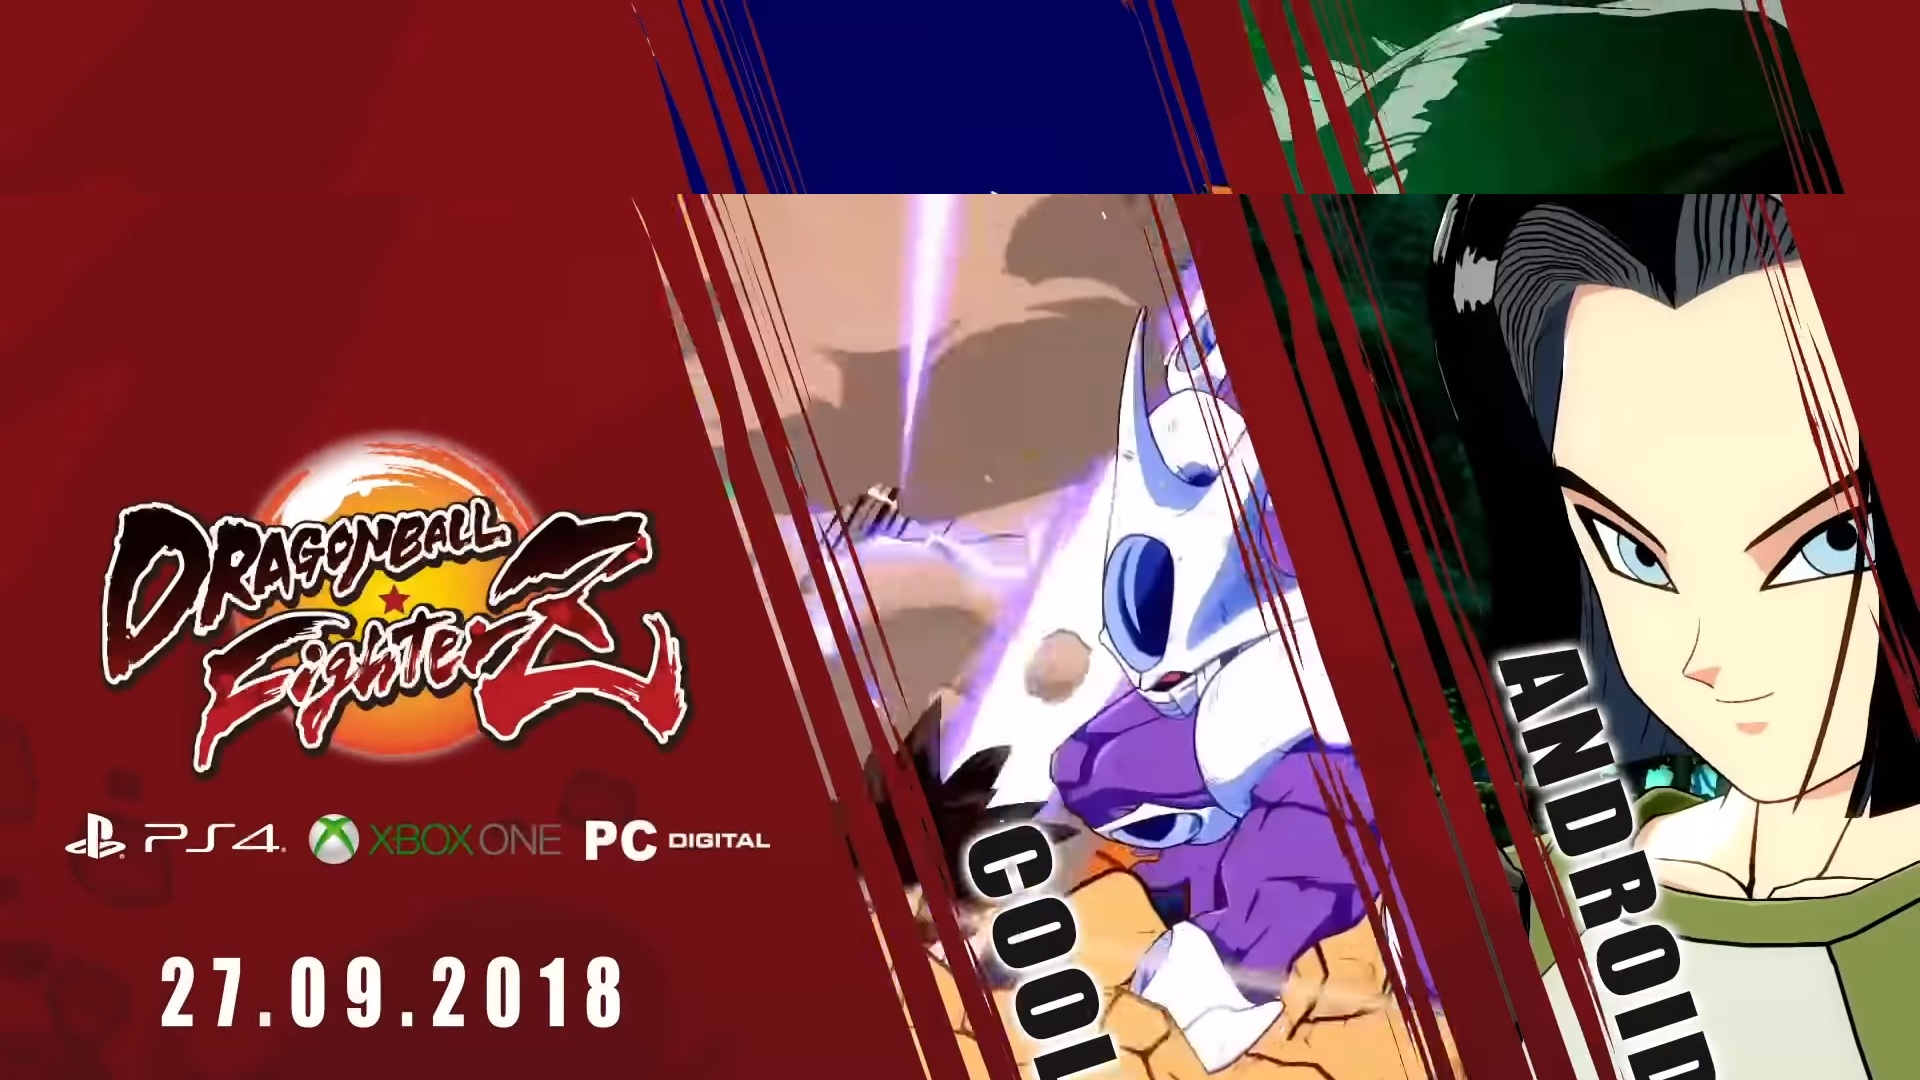 Dragon Ball FighterZ Welcomes New Playable Characters On Sept. 27th